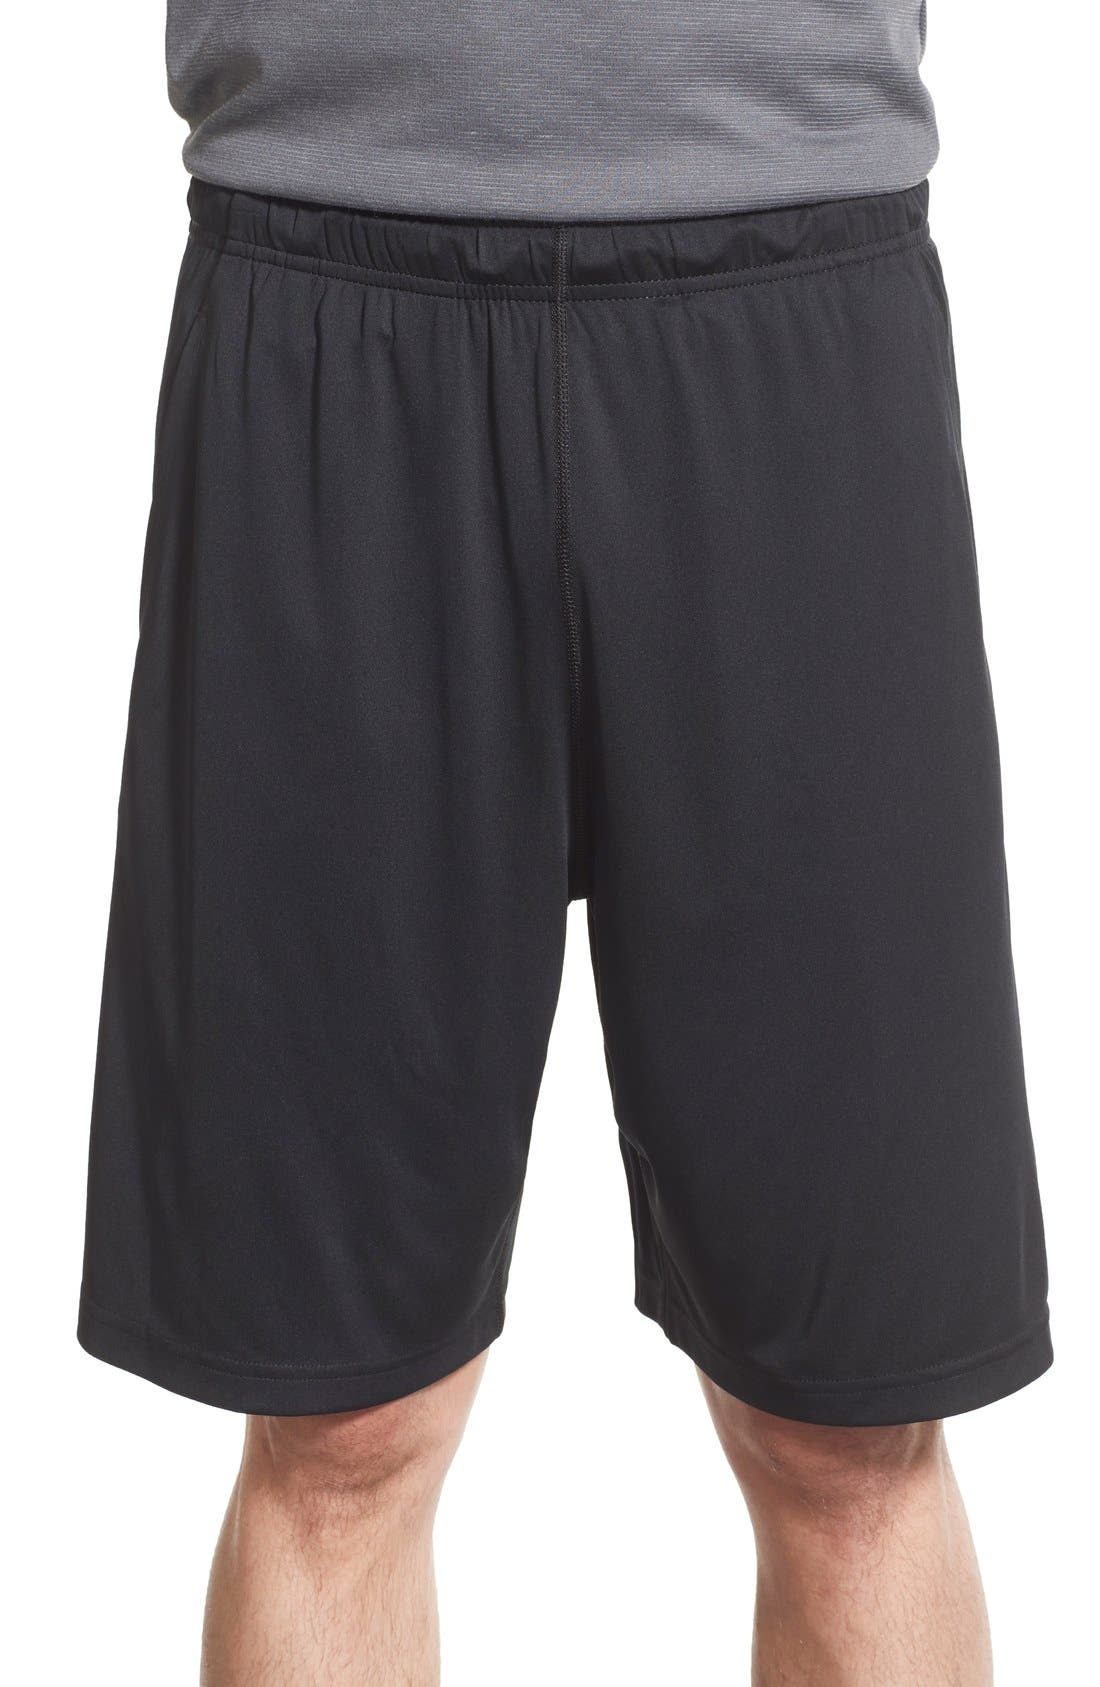 'Fly' Dri-FIT Training Shorts,                             Main thumbnail 10, color,